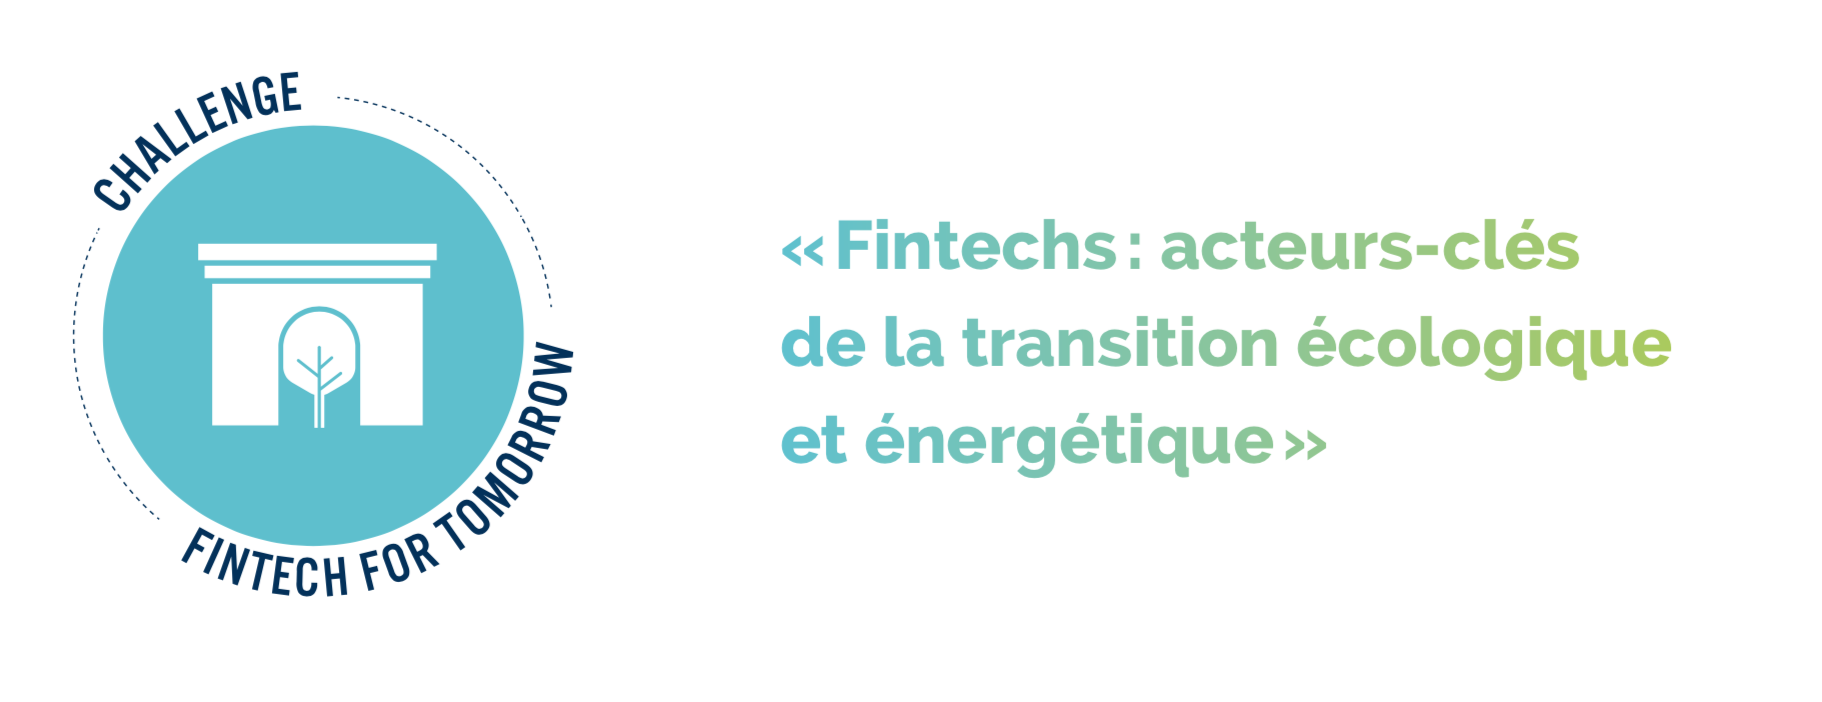 AAP – Challenge FinTech for Tomorrow jusqu'au 30/09